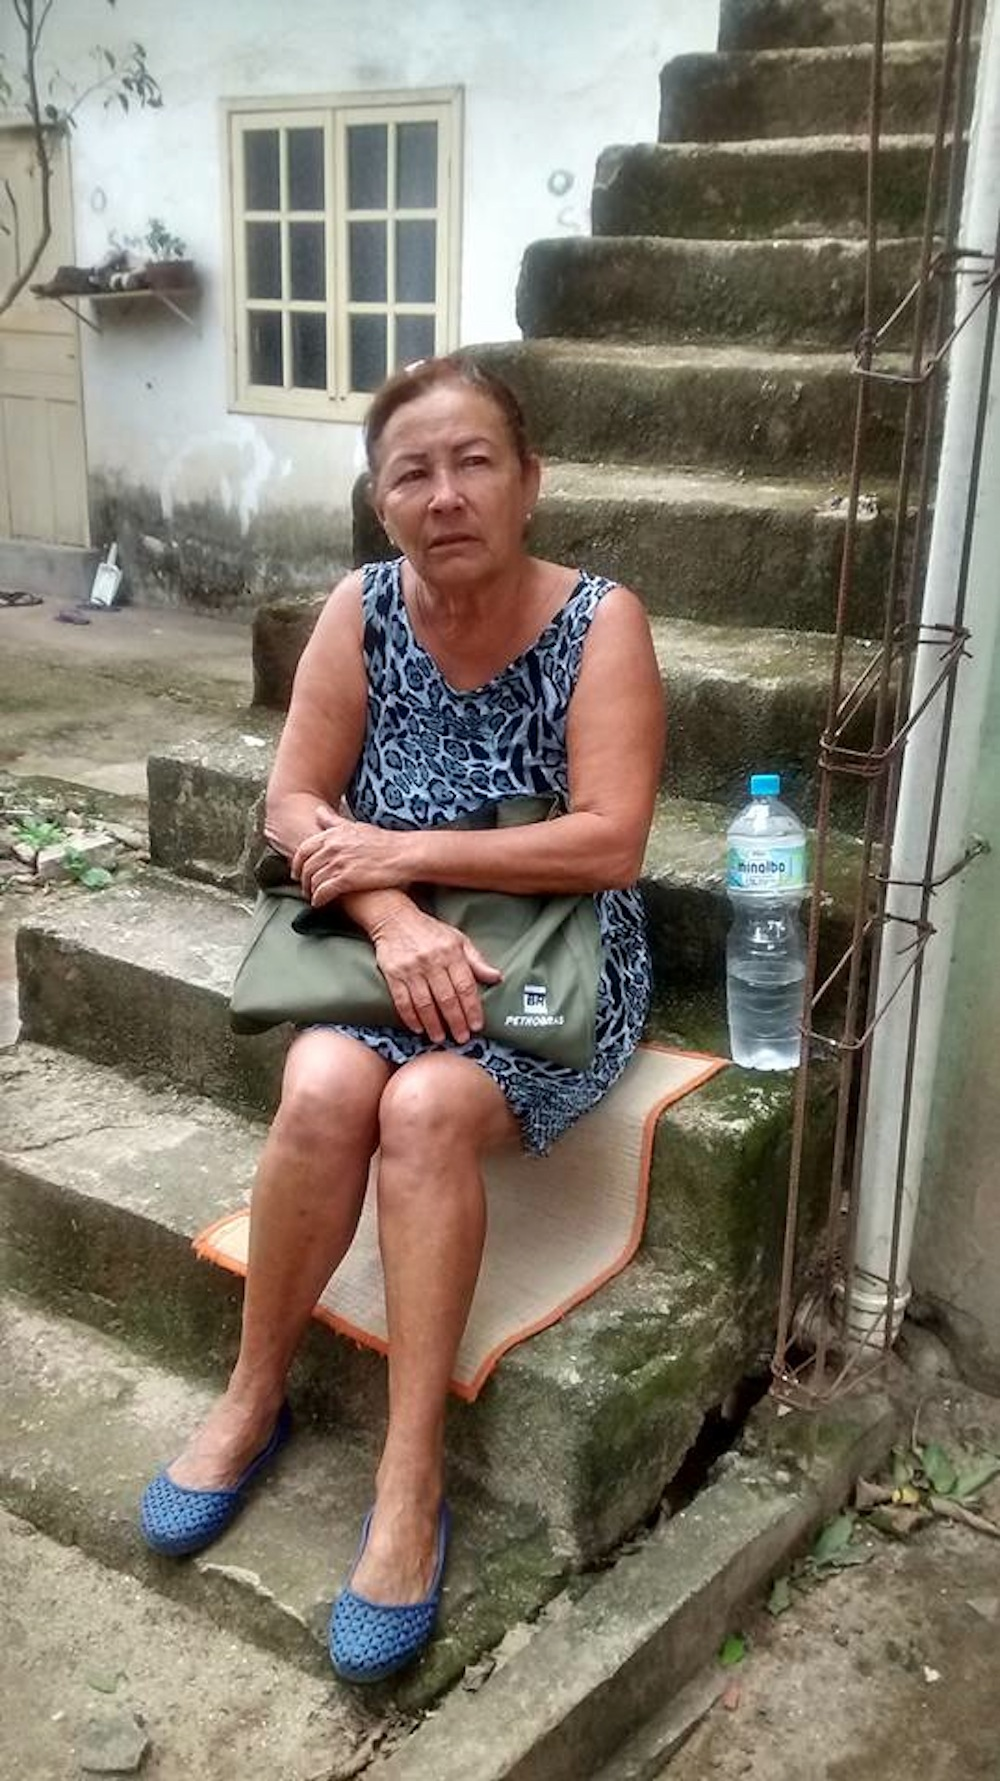 Mariza do Amor Divino photo posted on the community Facebook page after the demolition of her home